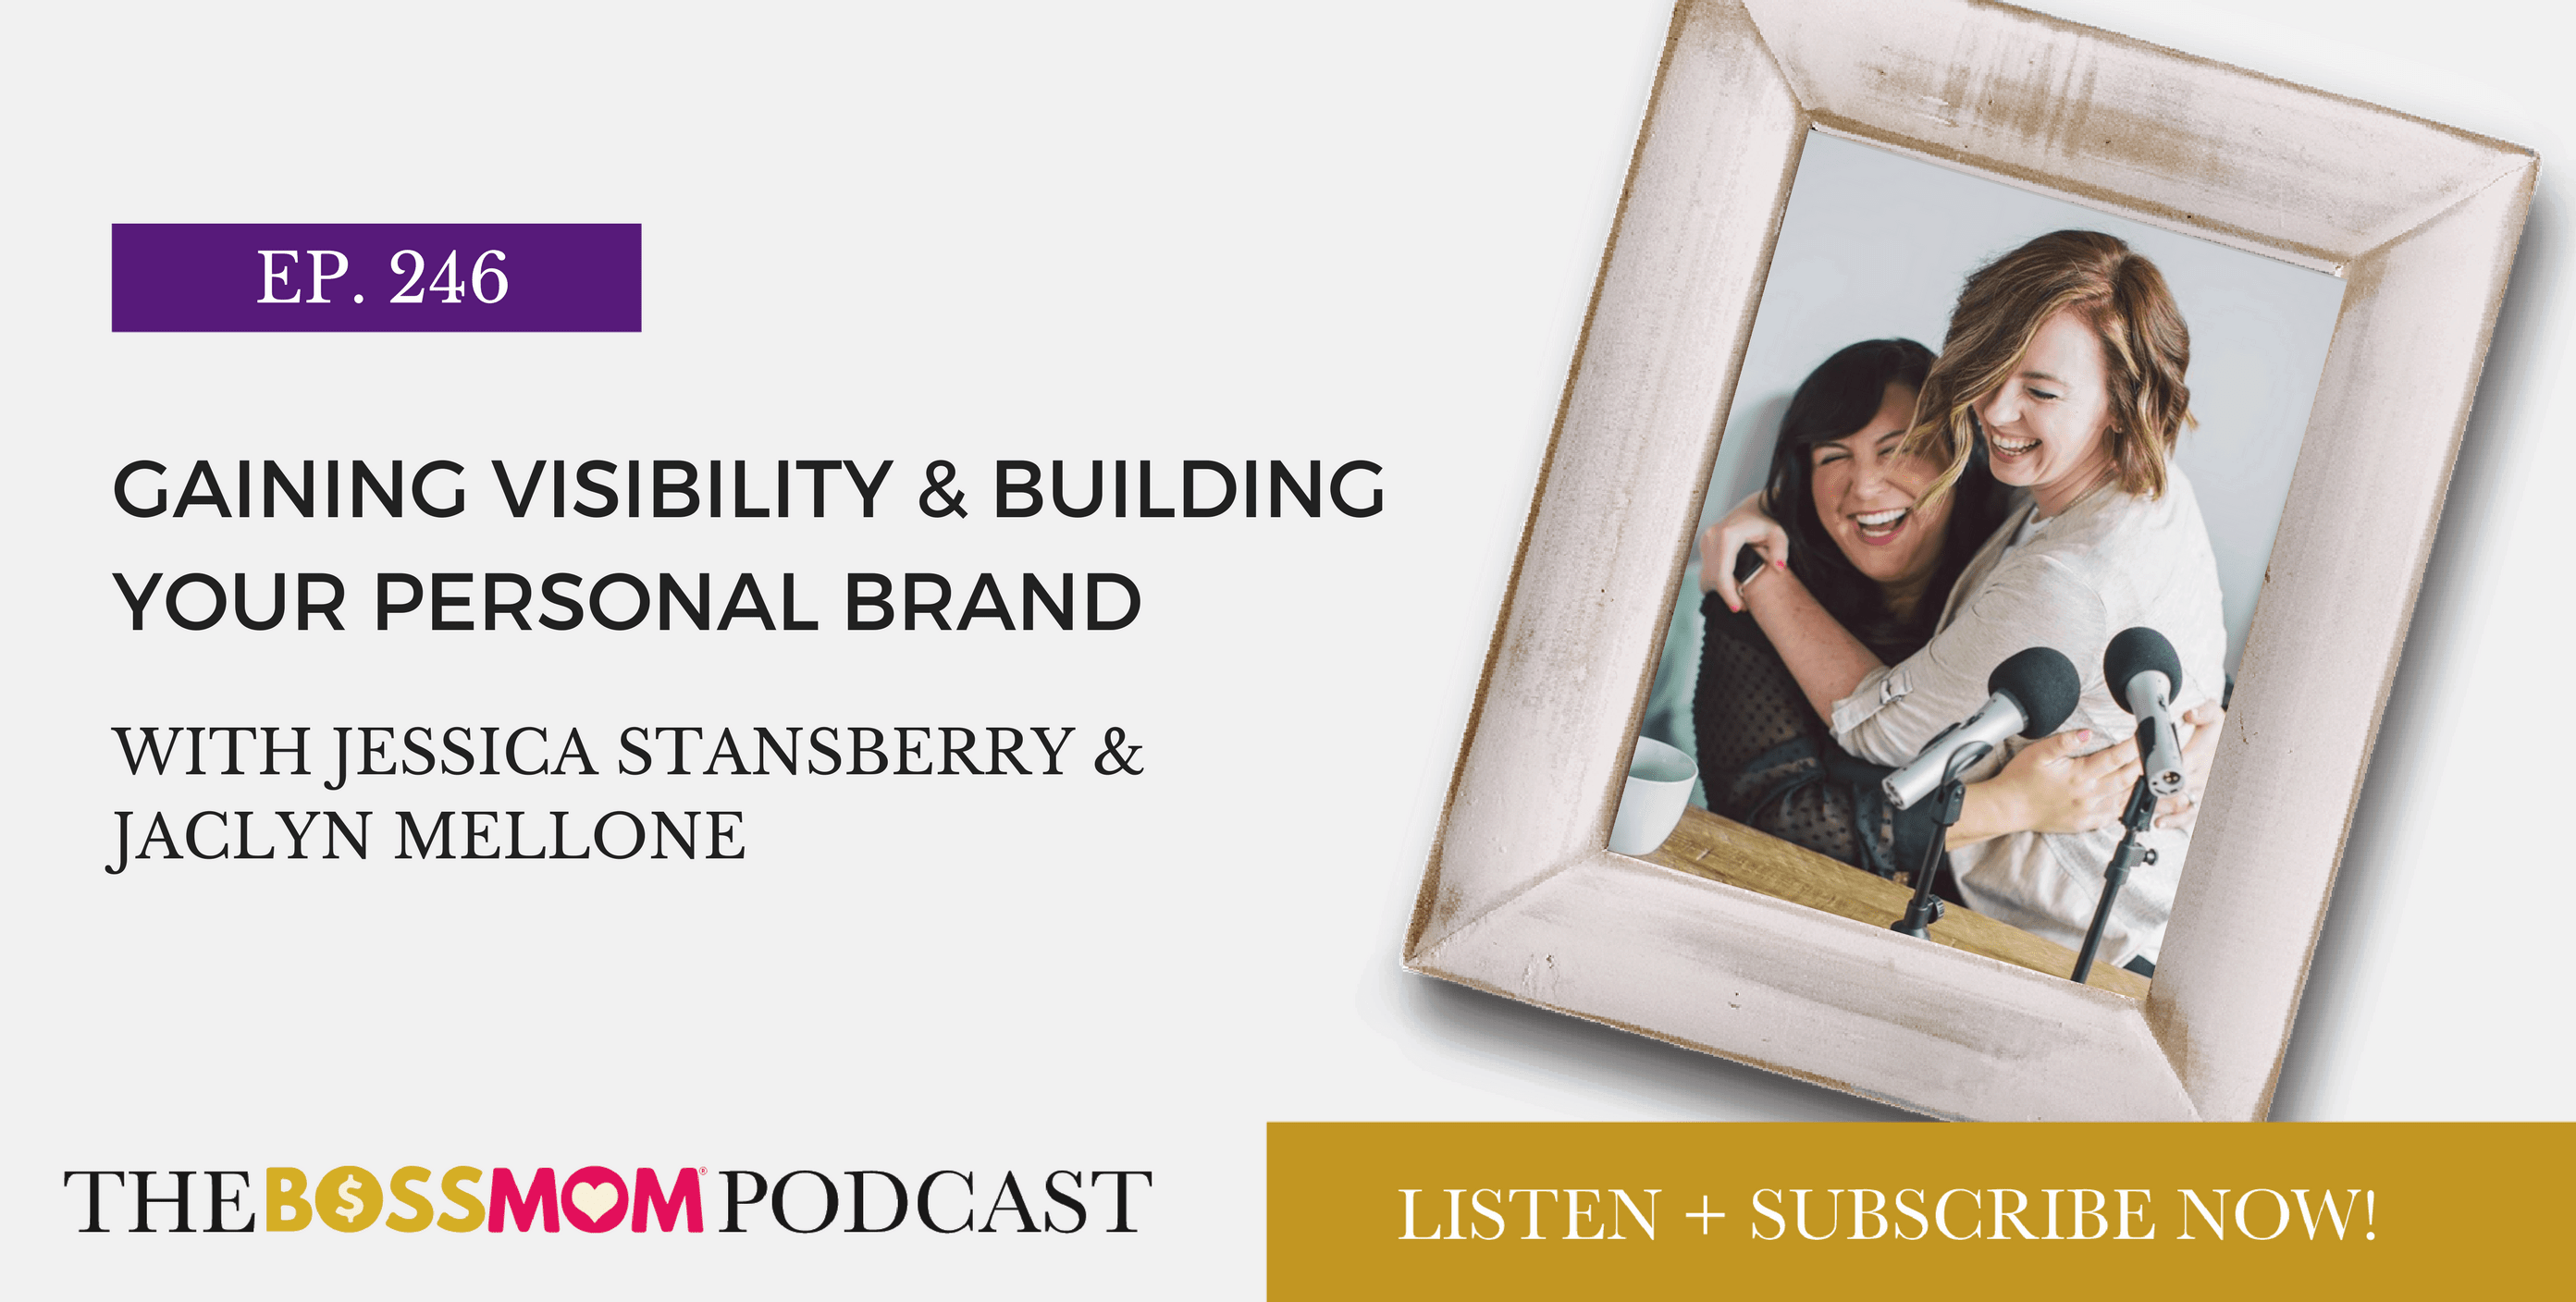 Episode 246: Gaining Visibility & Building Your Personal Brand with Jessica Stansberry & Jaclyn Mellone